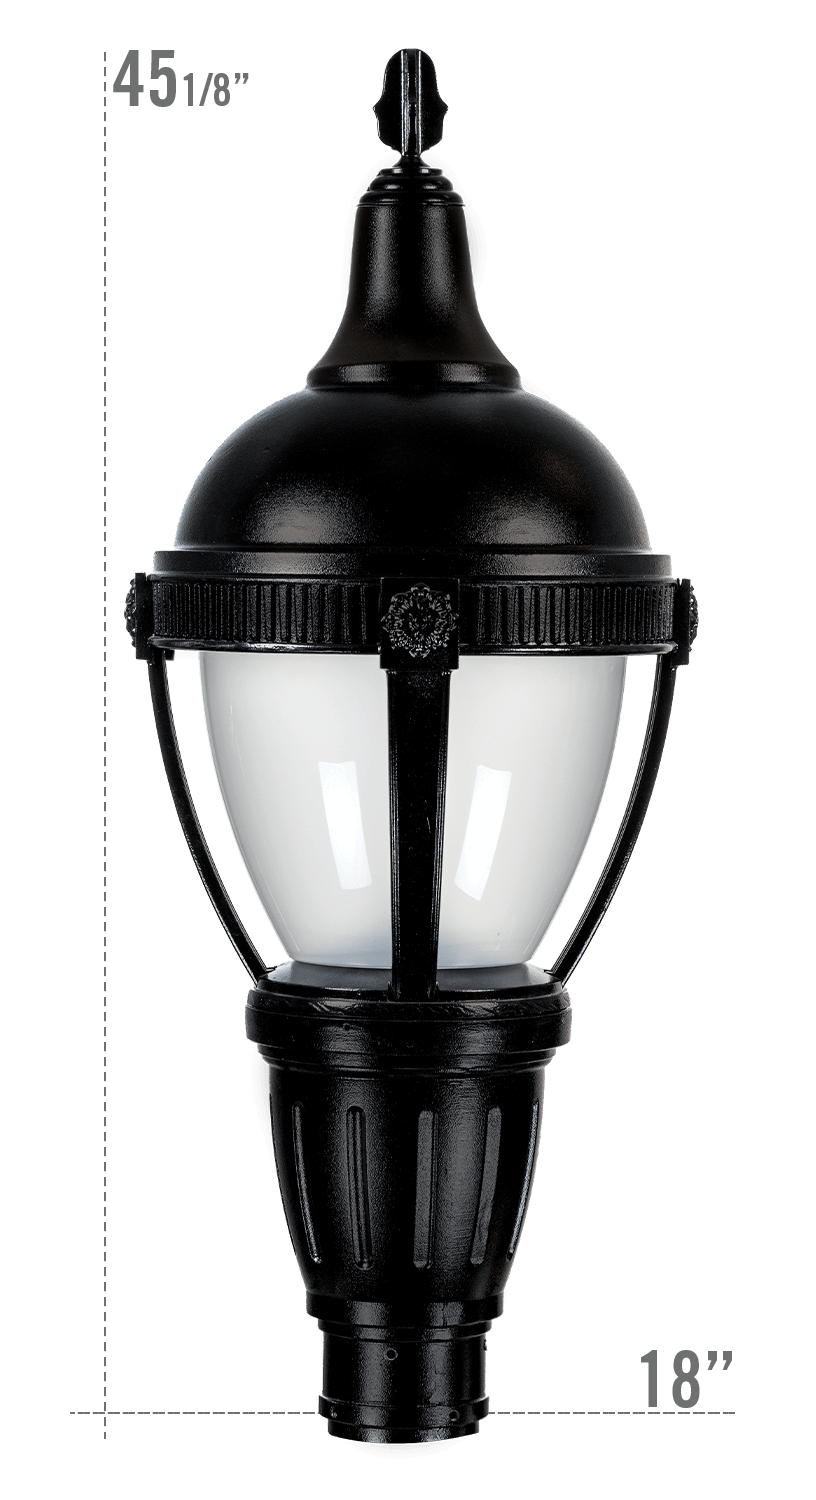 THE ROUND ROOF AUGUSTA LED LUMINAIRE WITH KEYWEST FITTER FROSTED GLOBE